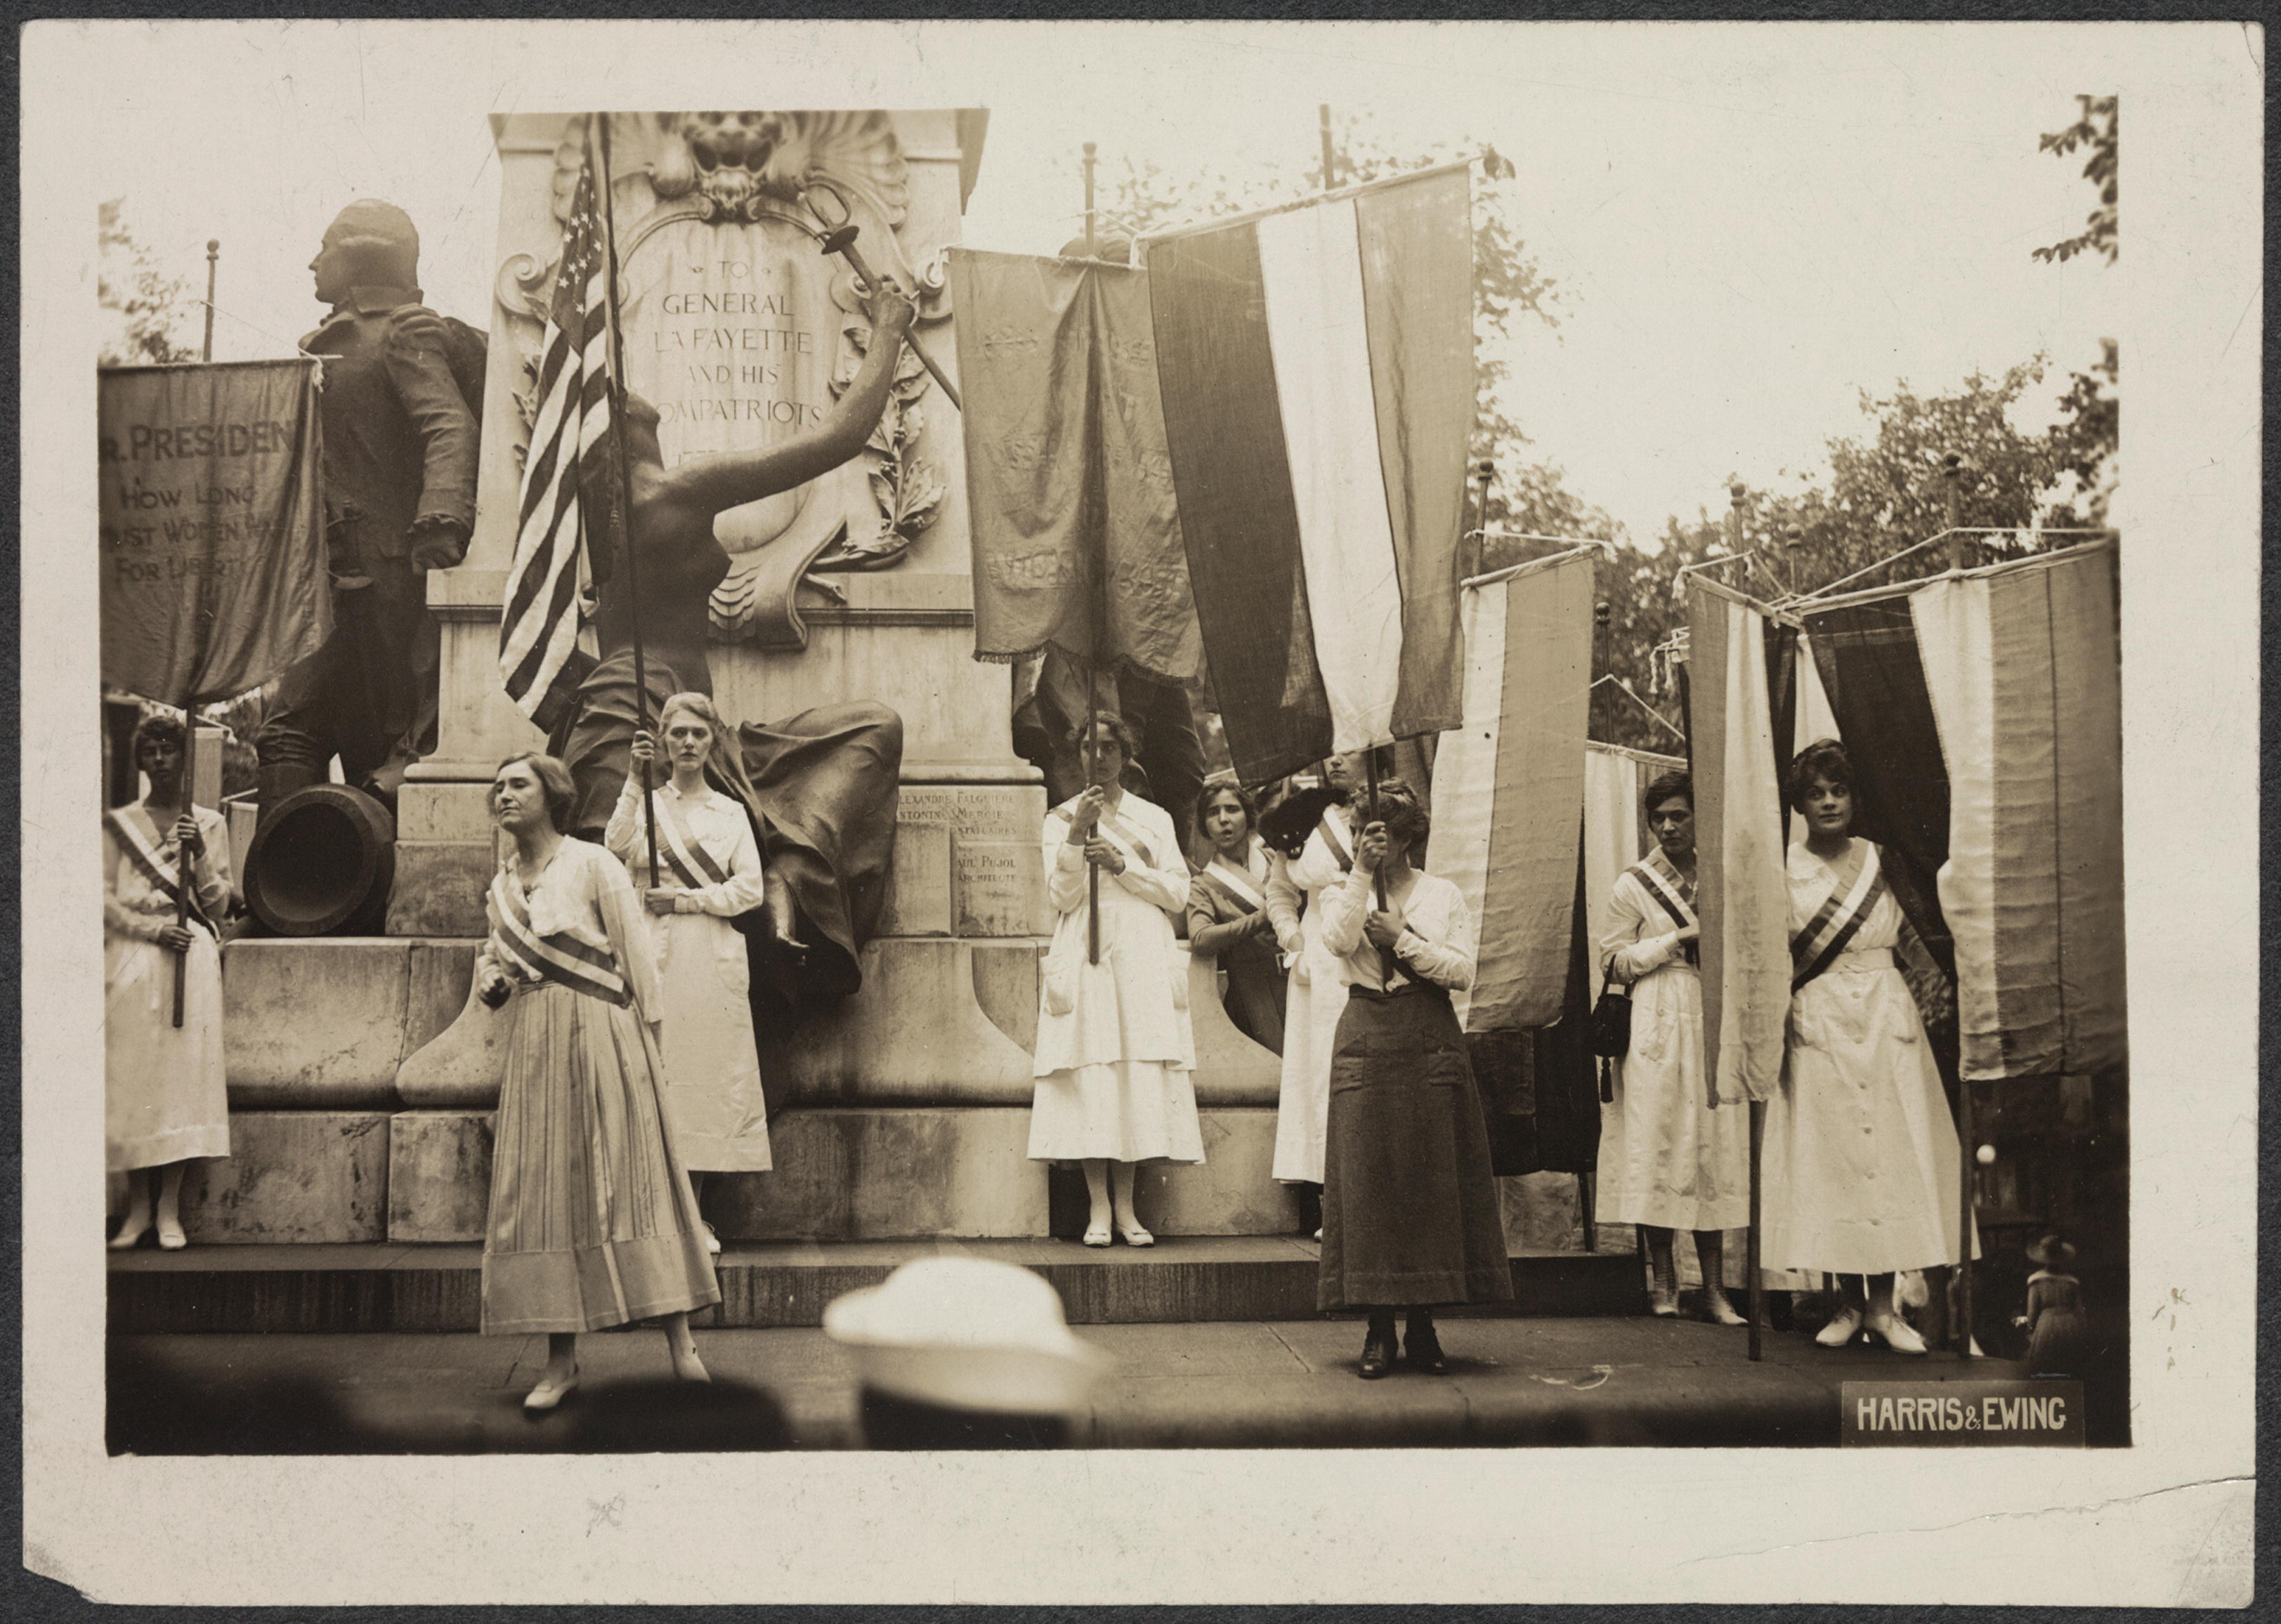 Suffrage demonstration at Lafayette Statue to get the last vote in the Senate before June 4